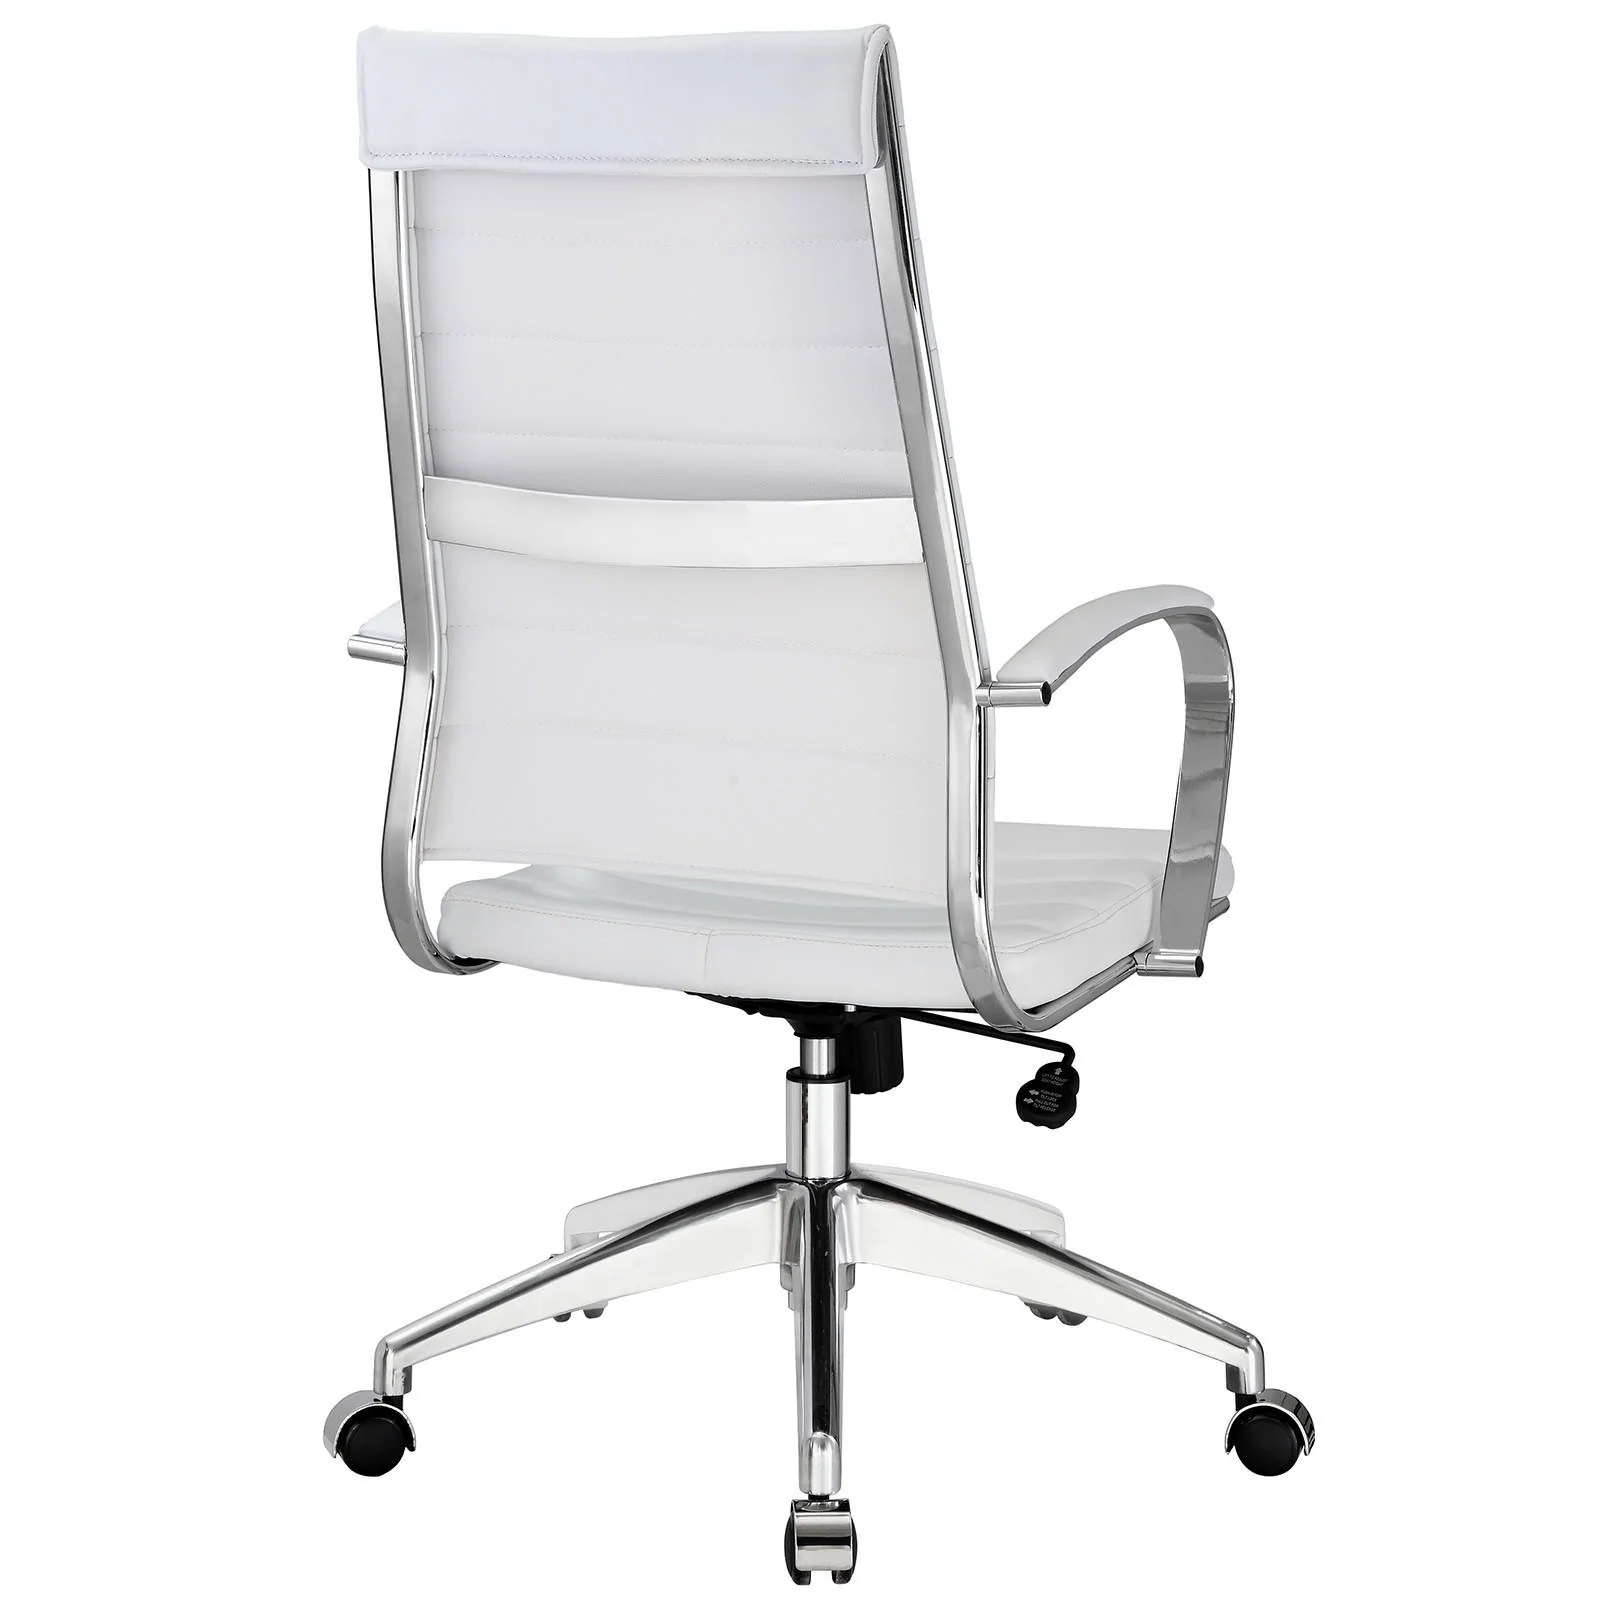 Minimalist Desk Chair Modway Modern Jive High Back Adjustable Computer Office Chair Eei 272